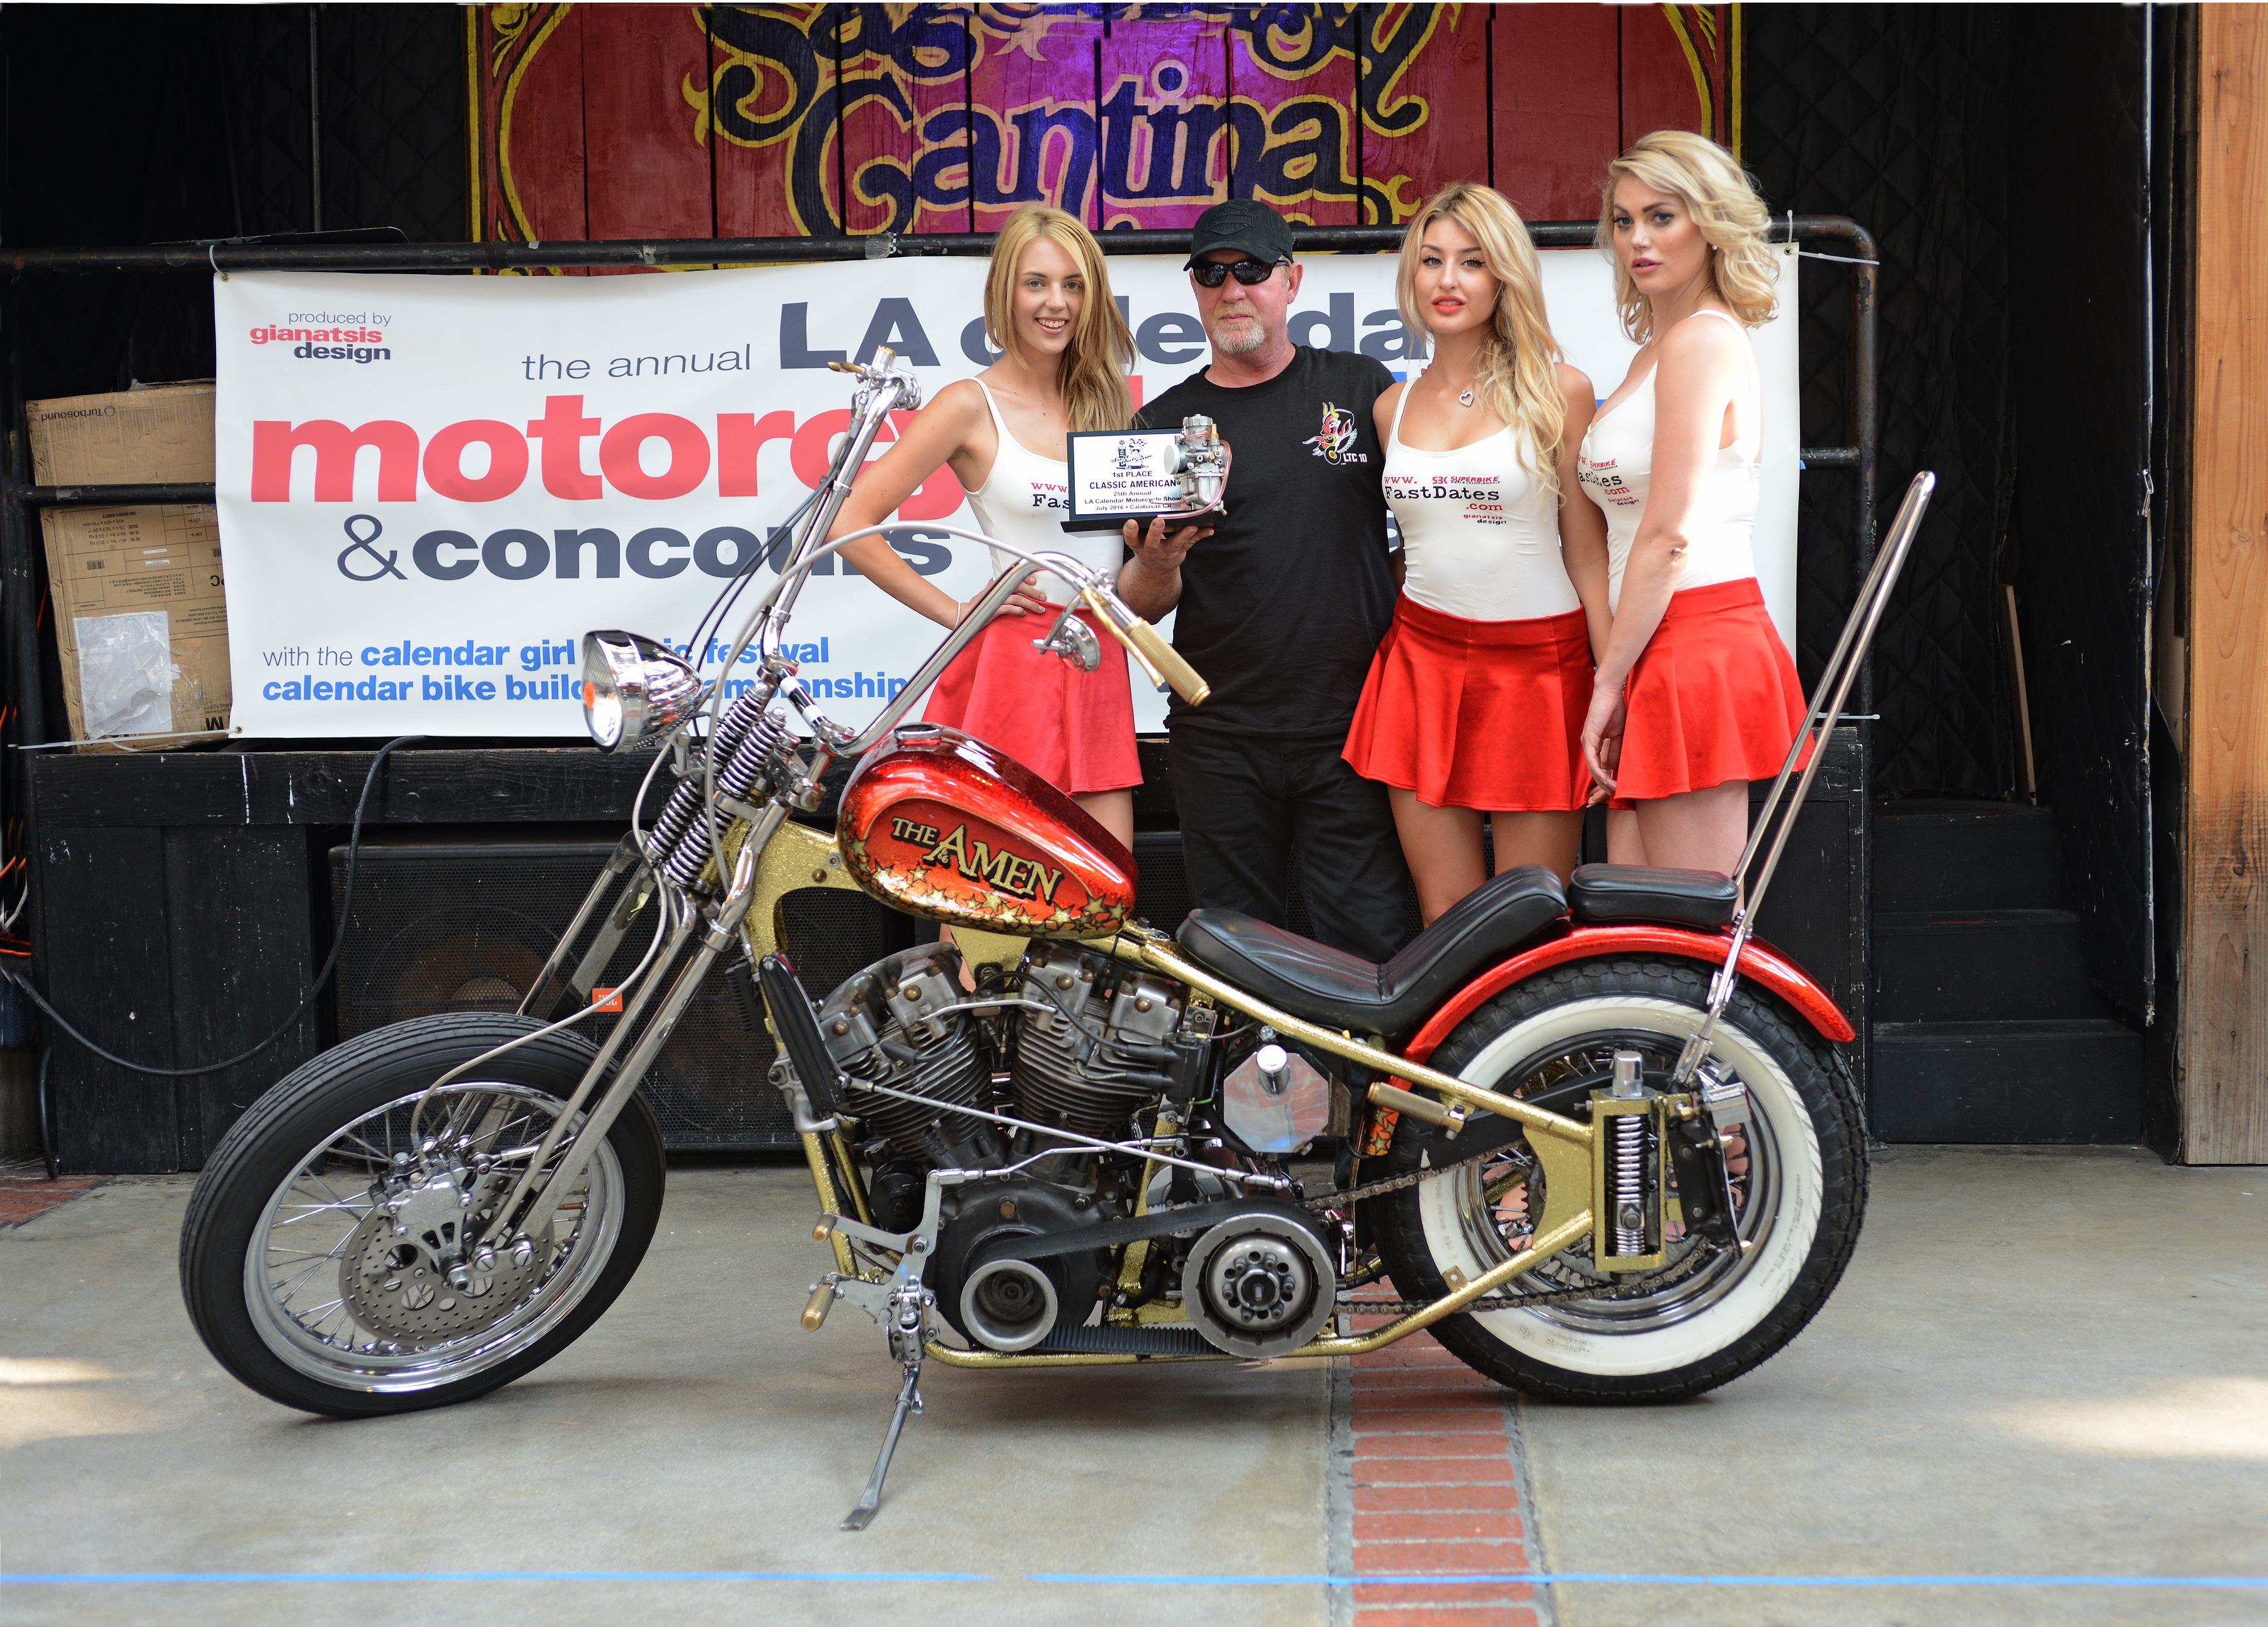 FastDates com - The 2016 Los Angeles Calendar Motorcycle Show